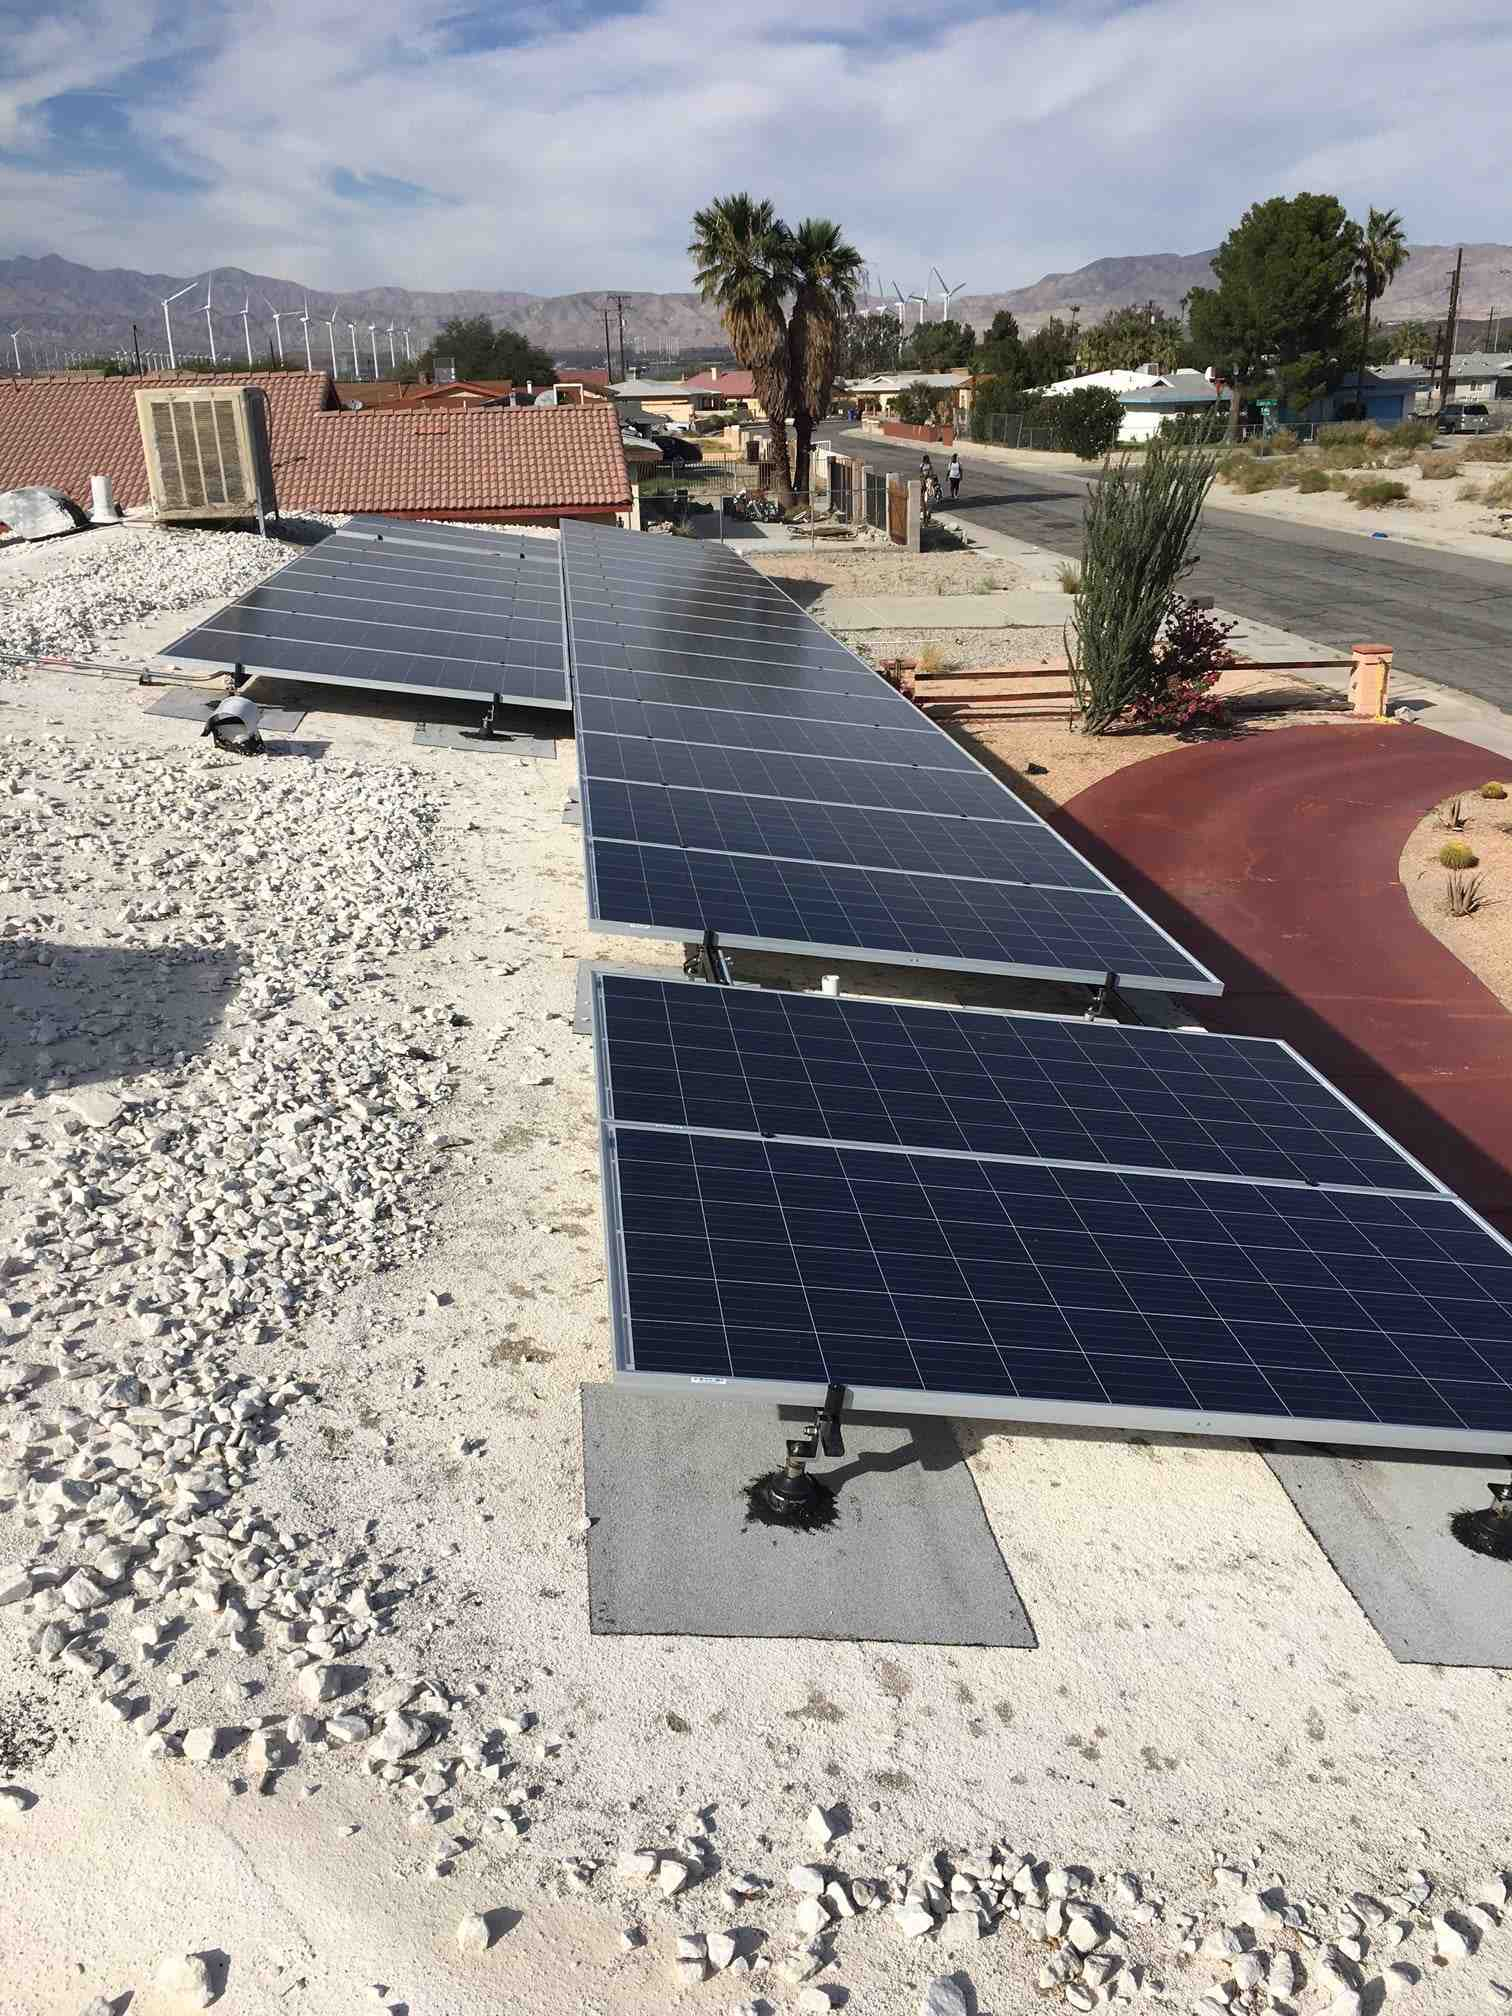 What are the most efficient solar panels 2020?